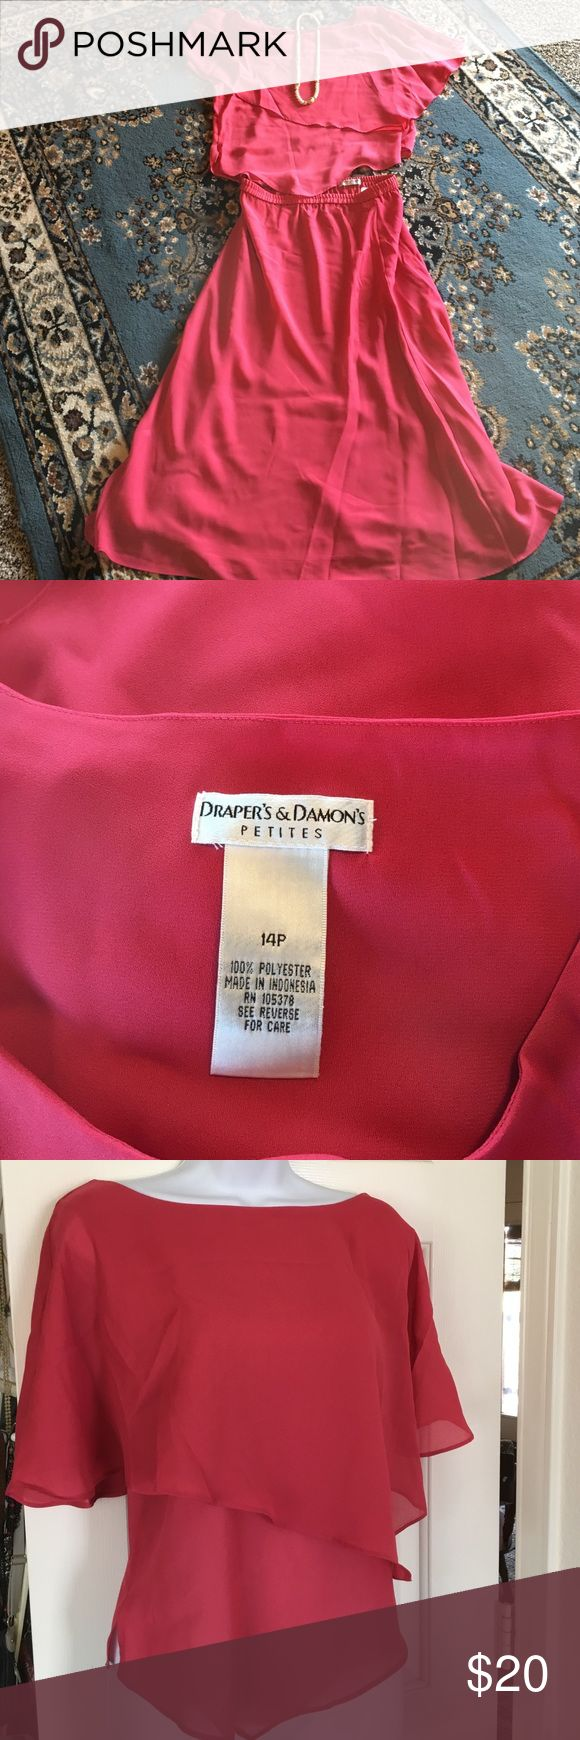 Skirt Suit Sz 14 P 2 price Skirt Set - in good condition- floating top with batwing sleeves- boatneck top, Skirt has full elastic waist measurement from waist to hem 33 inches, Perfect for any upcoming Spring functions 🌺 Color is a soft Salmon Draper's & Damon's Petites Skirts Skirt Sets